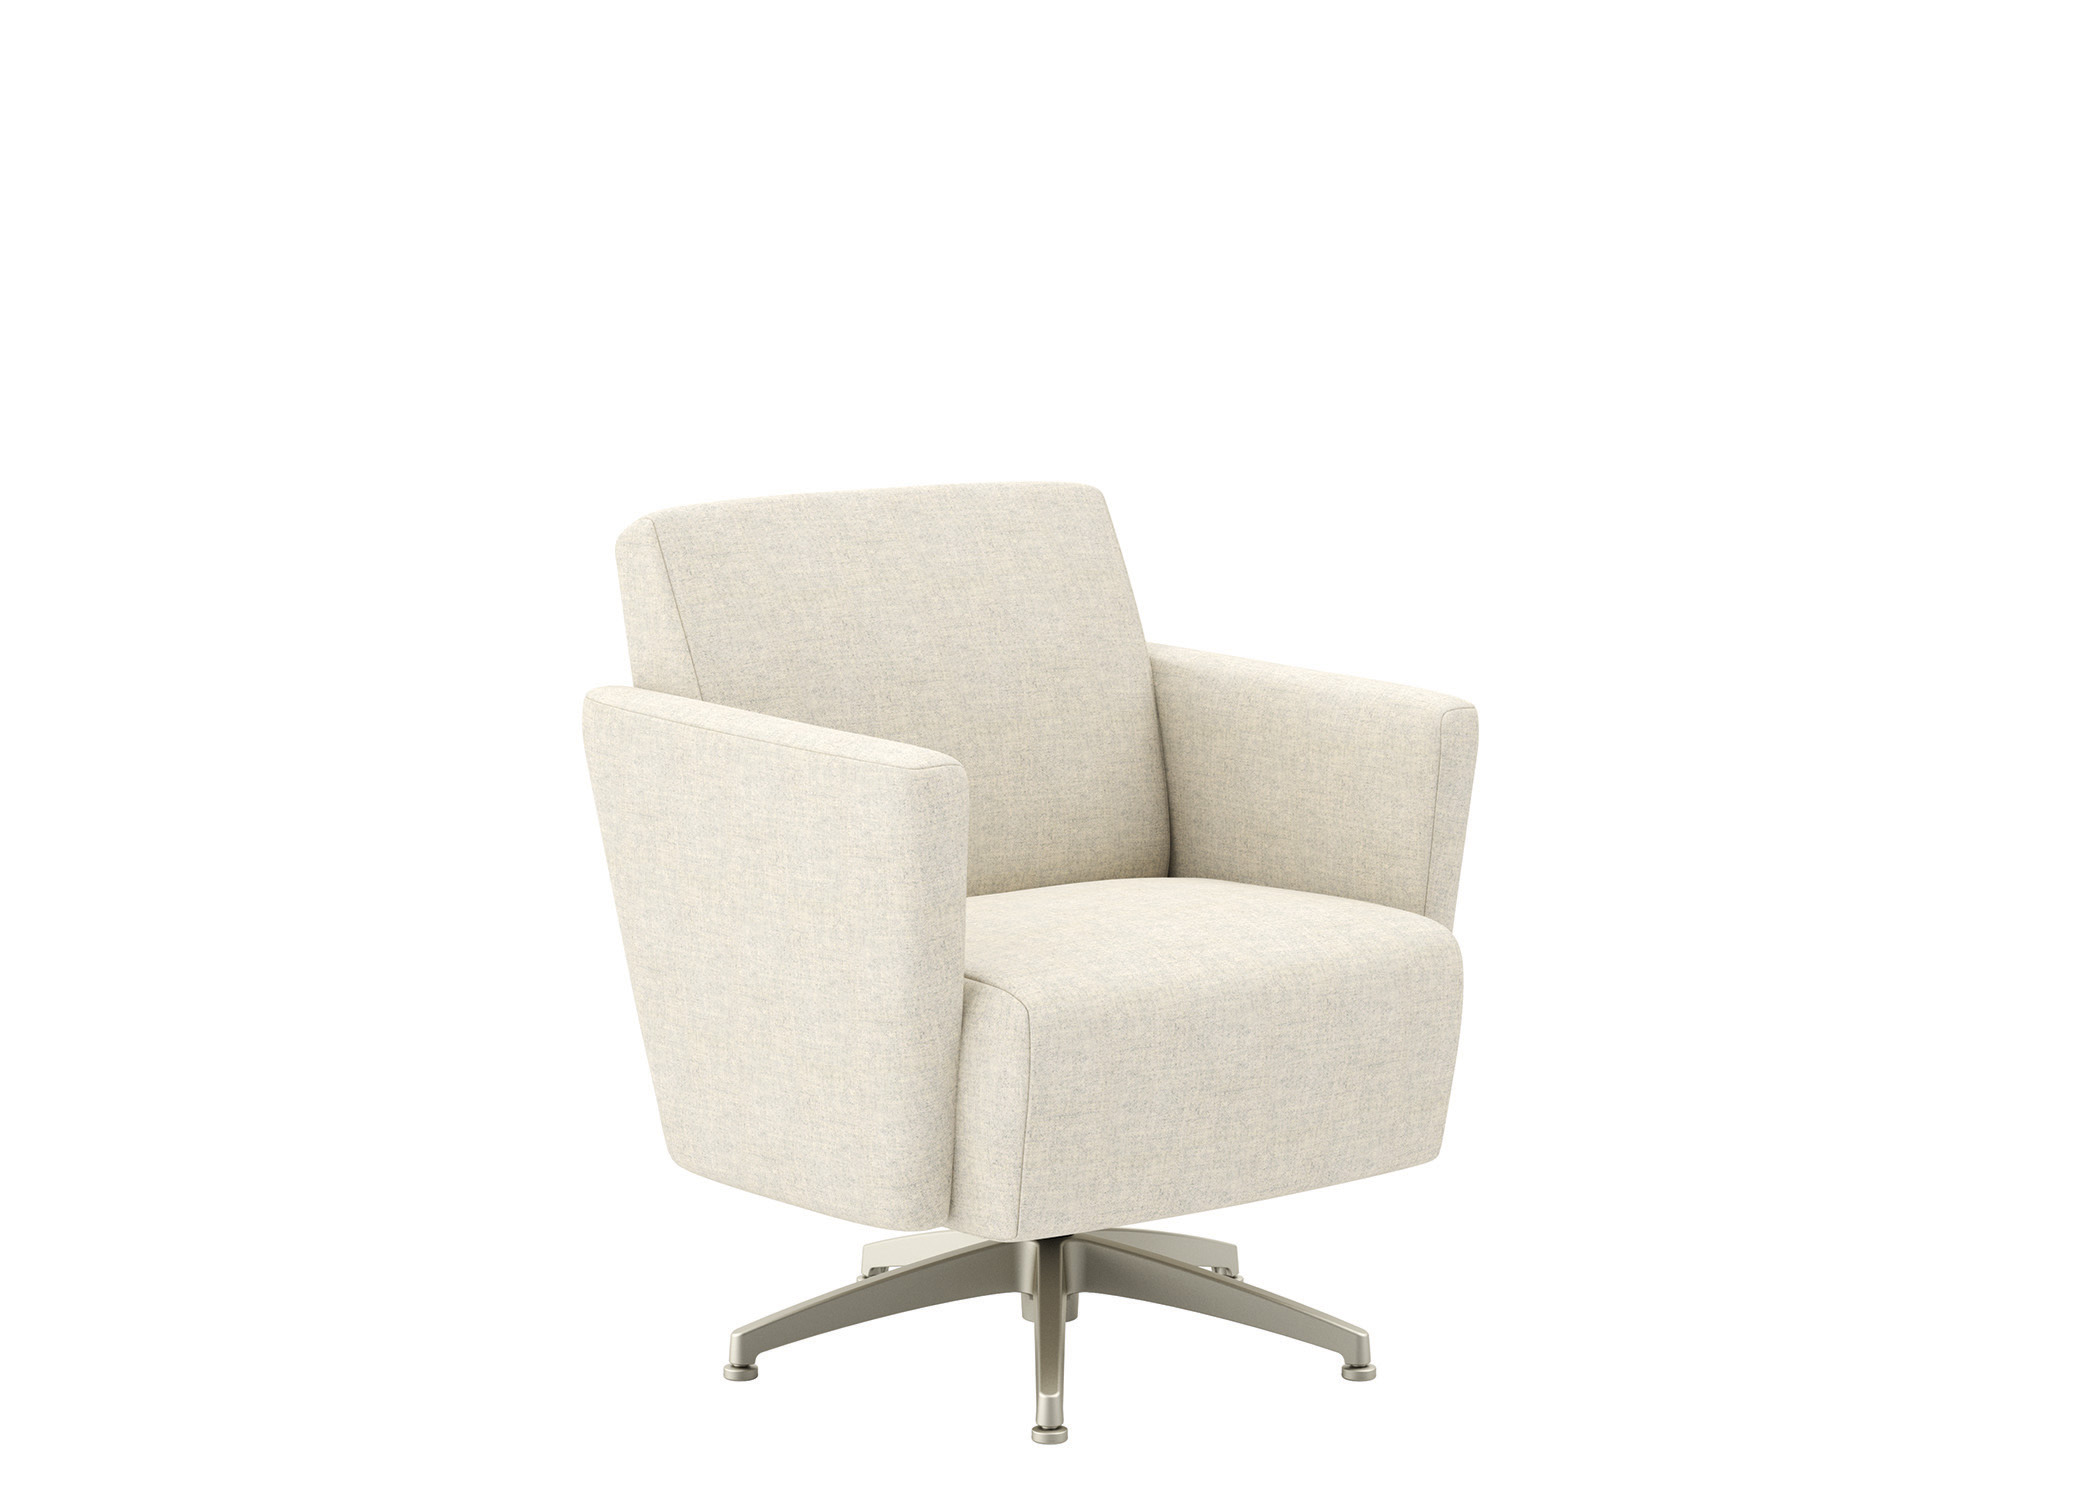 office club chairs bumbo chair walmart seating national furniture product range